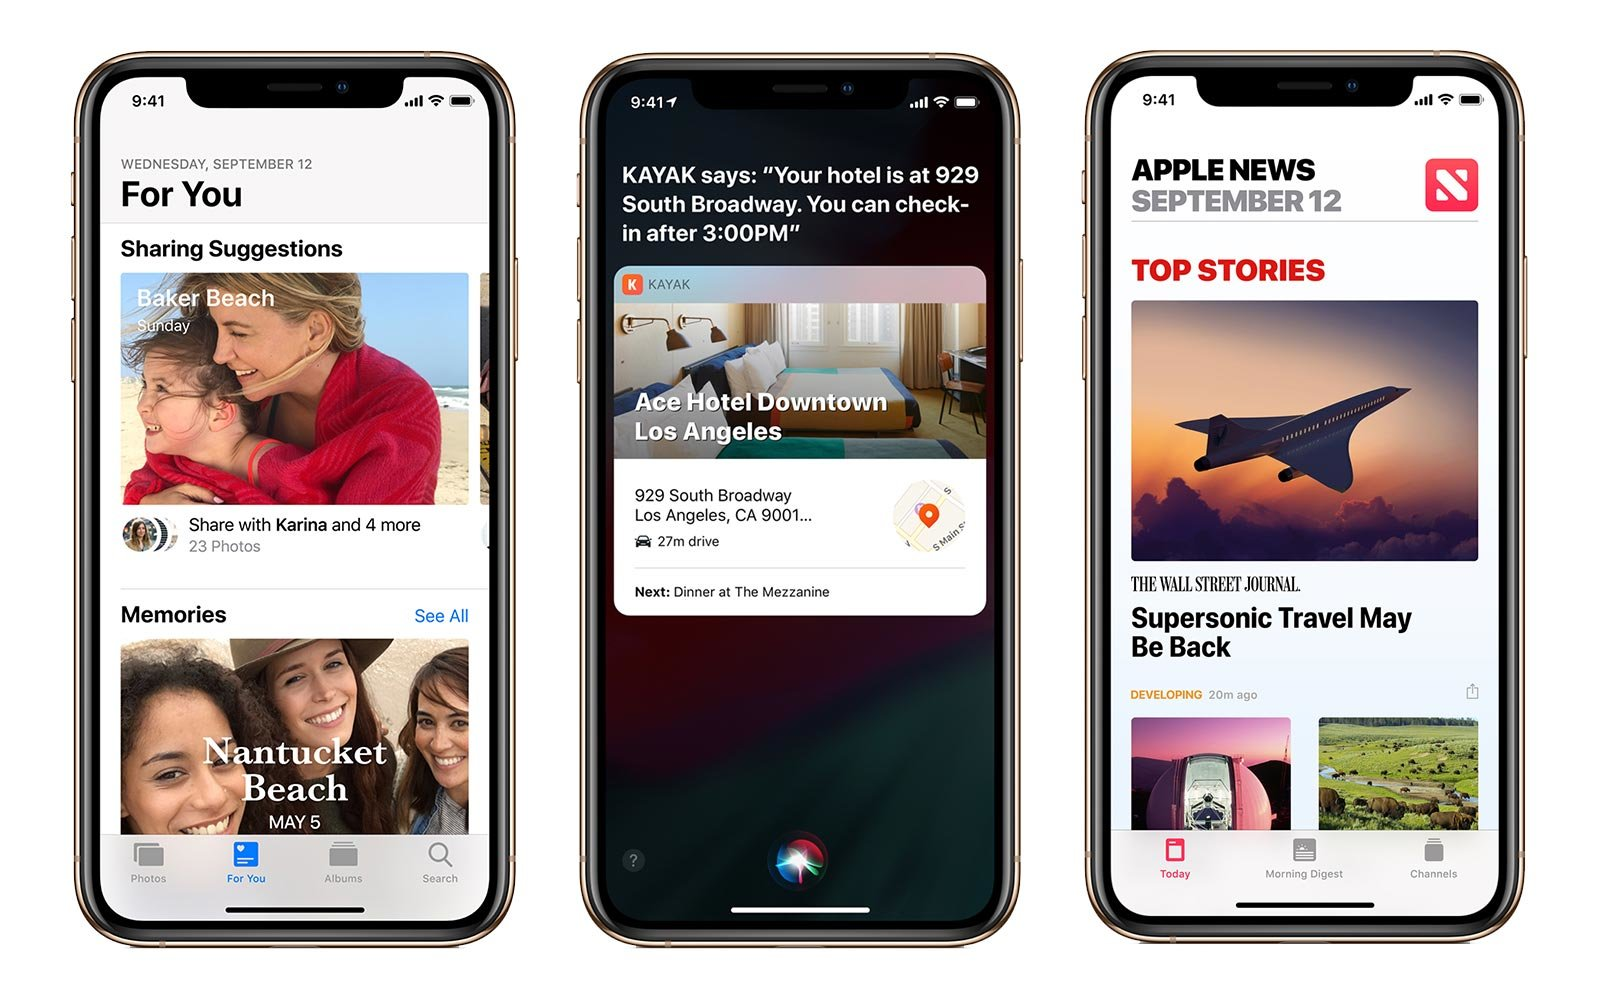 Screenshots from the new Apple iOS 12 operating system